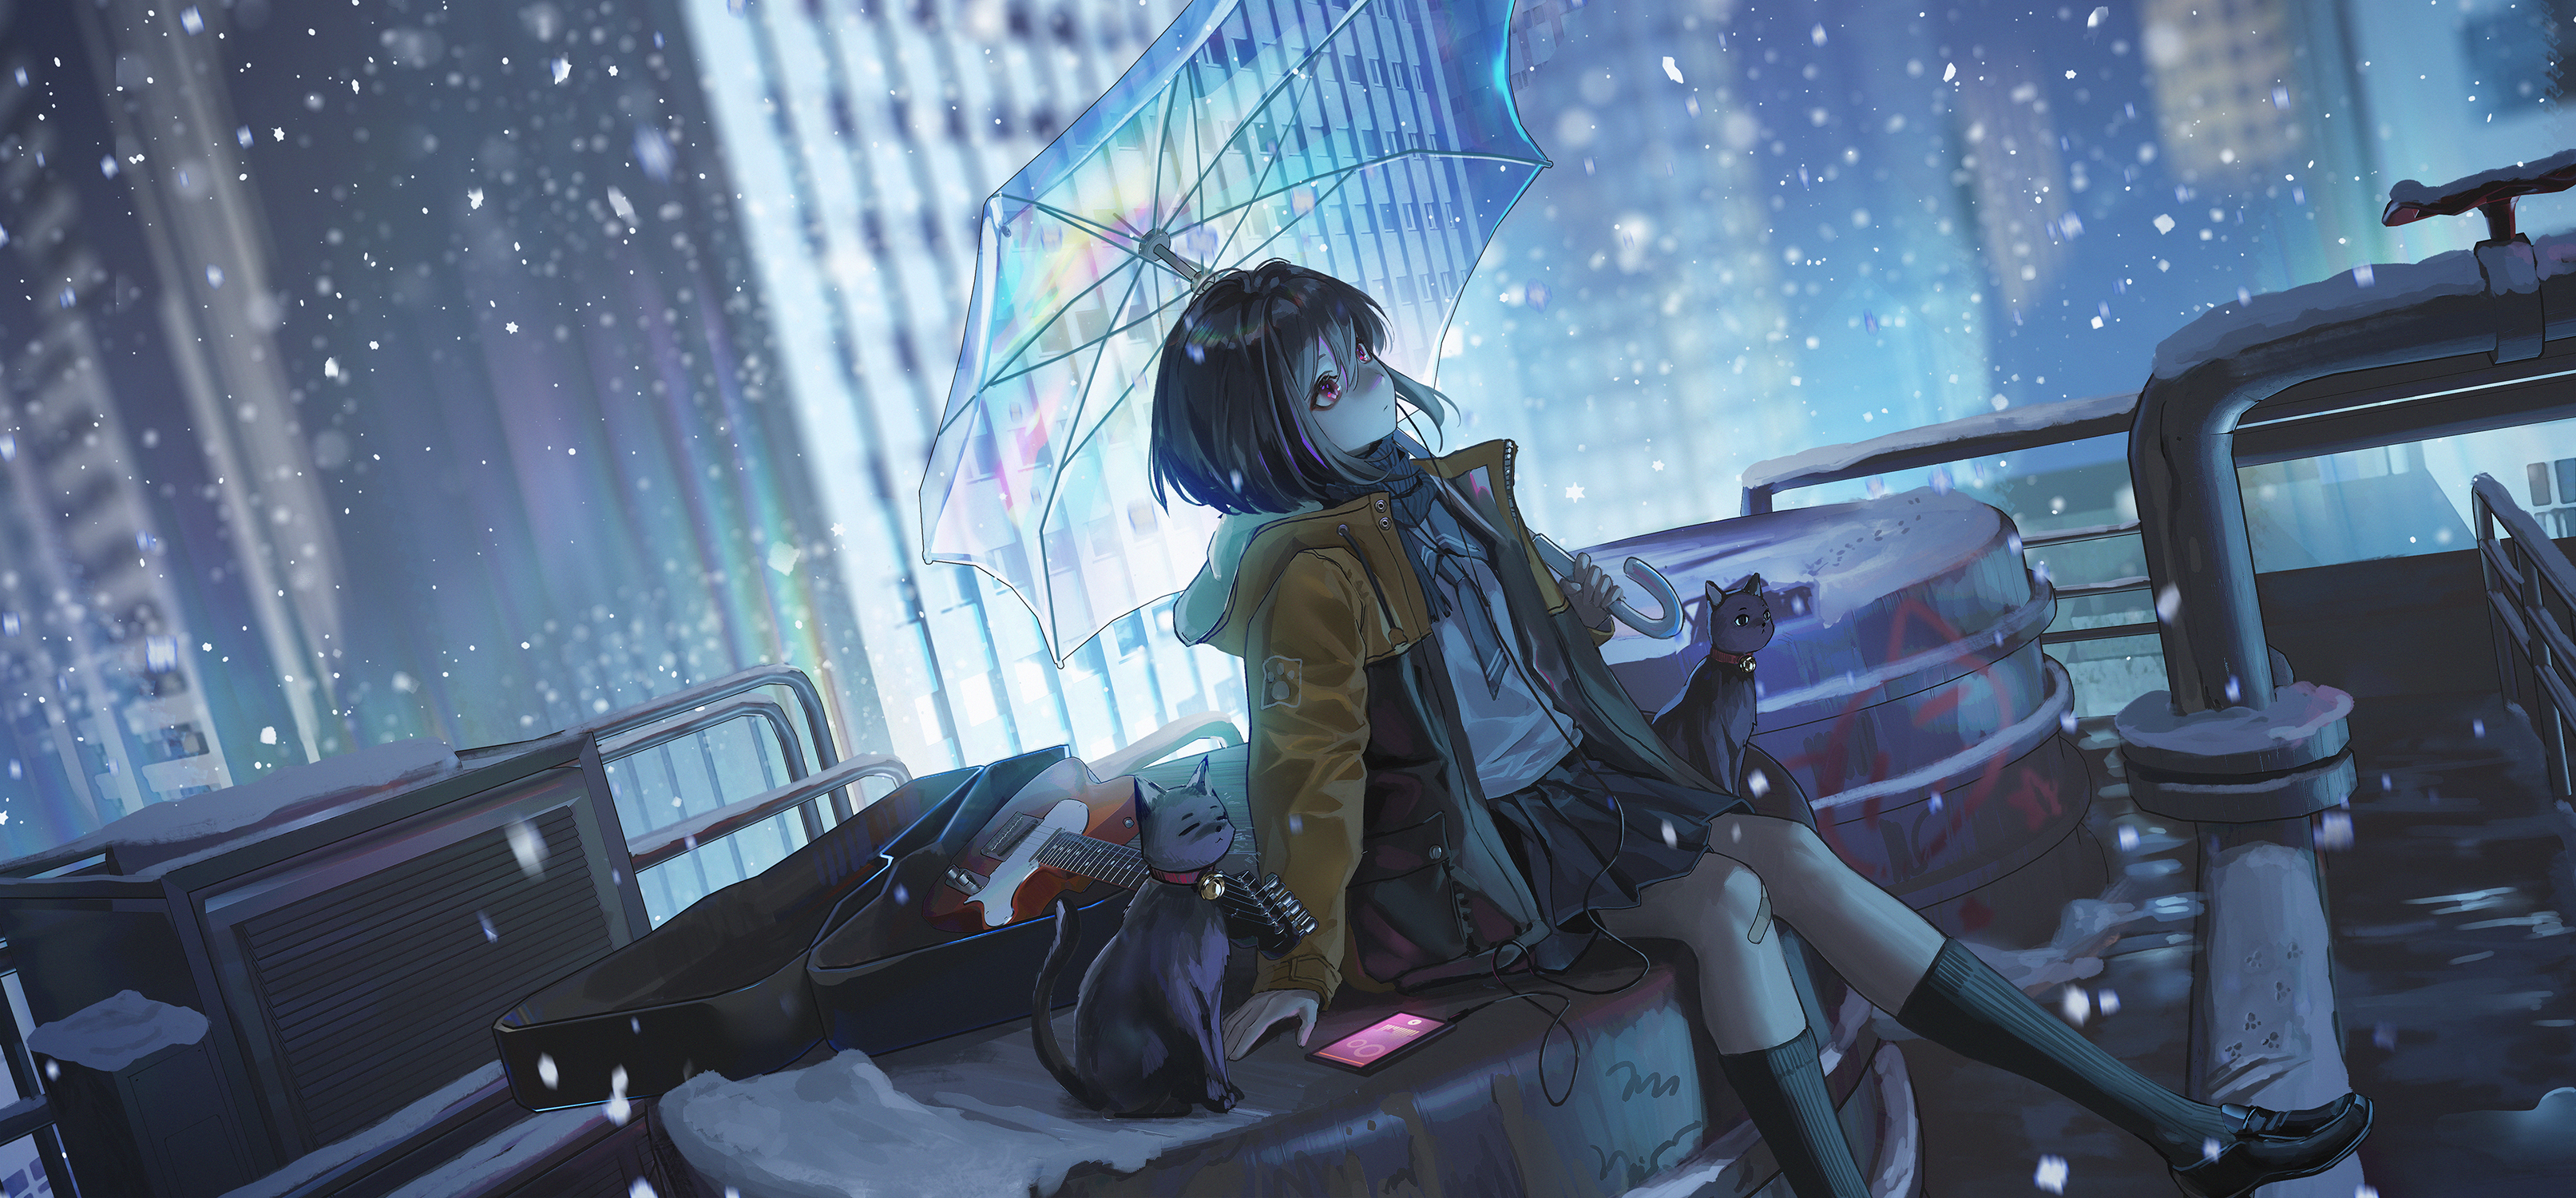 Anime 3226x1500 umbrella cats guitar snow rooftops city snowflakes snow flakes anime girls school uniform short hair dark hair red eyes kirino ttk